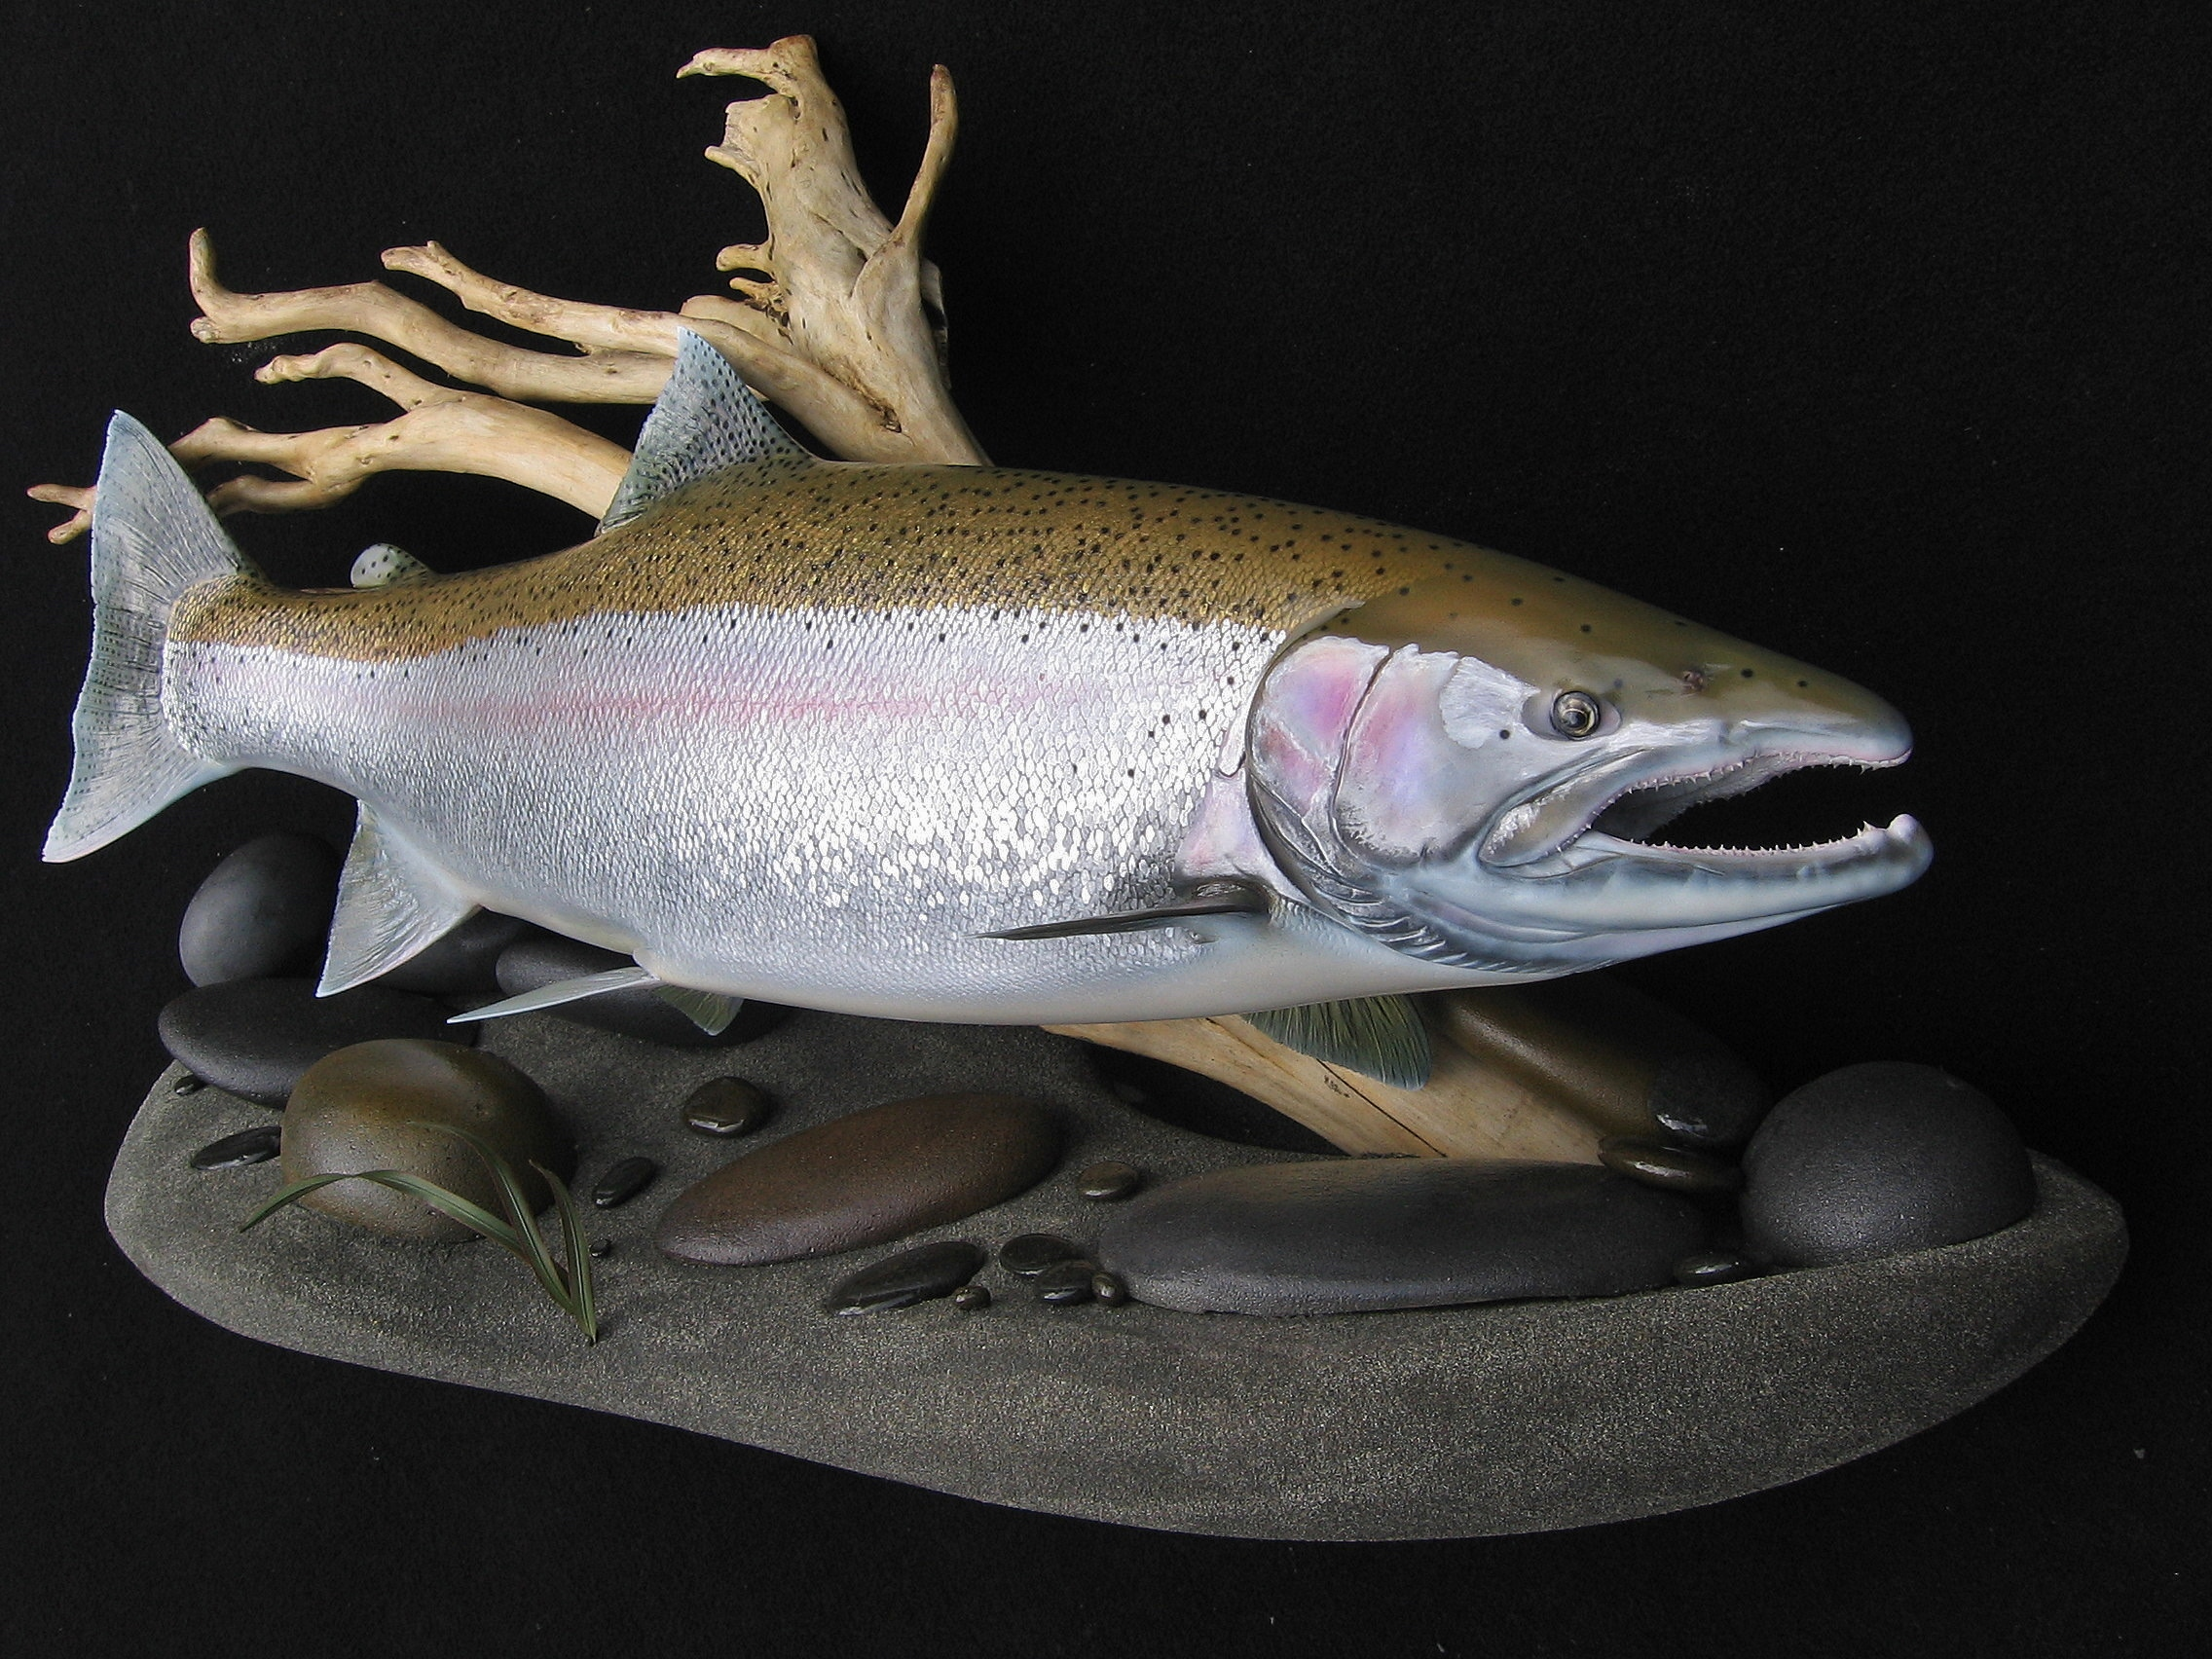 25 lb. Steelhead Fish Replica on streambed habitat wall display Luke Filmer Blackwater